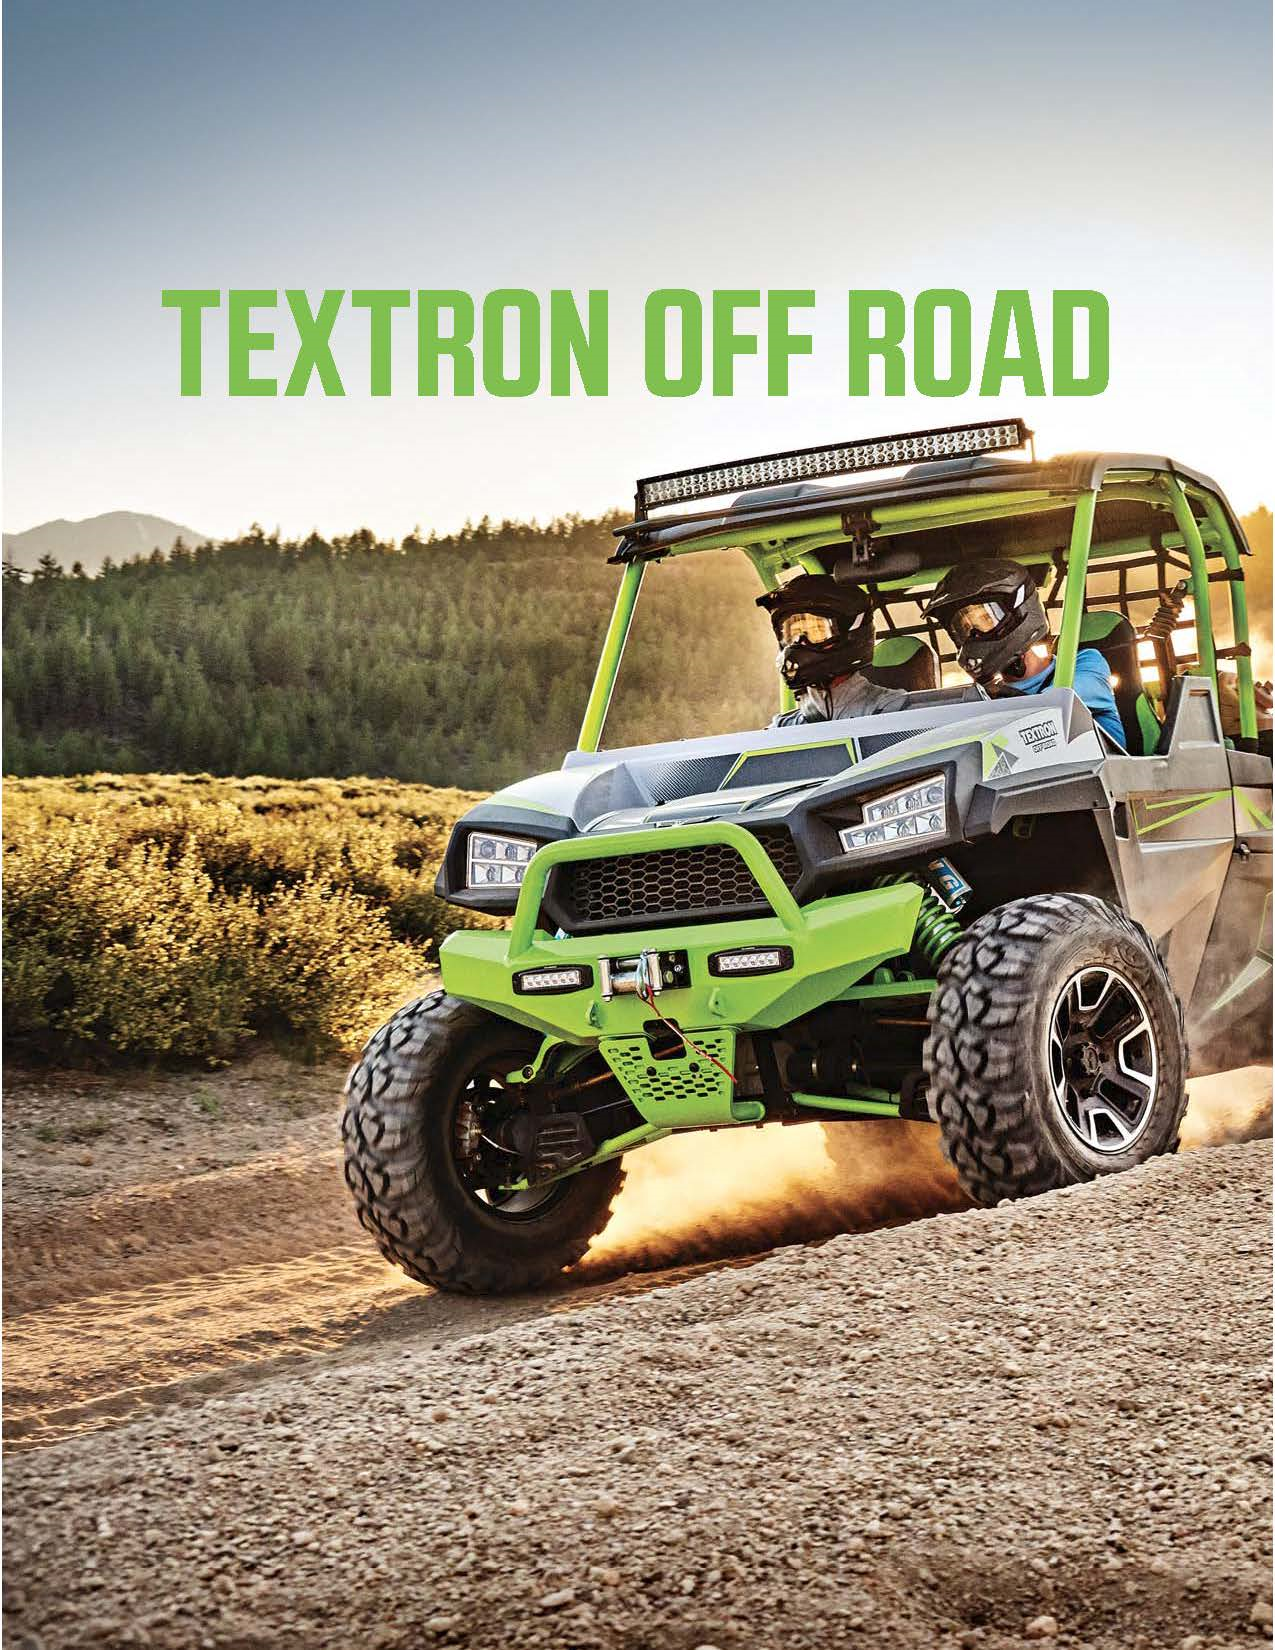 2018 Textron off Road Accessory Catalog Cover